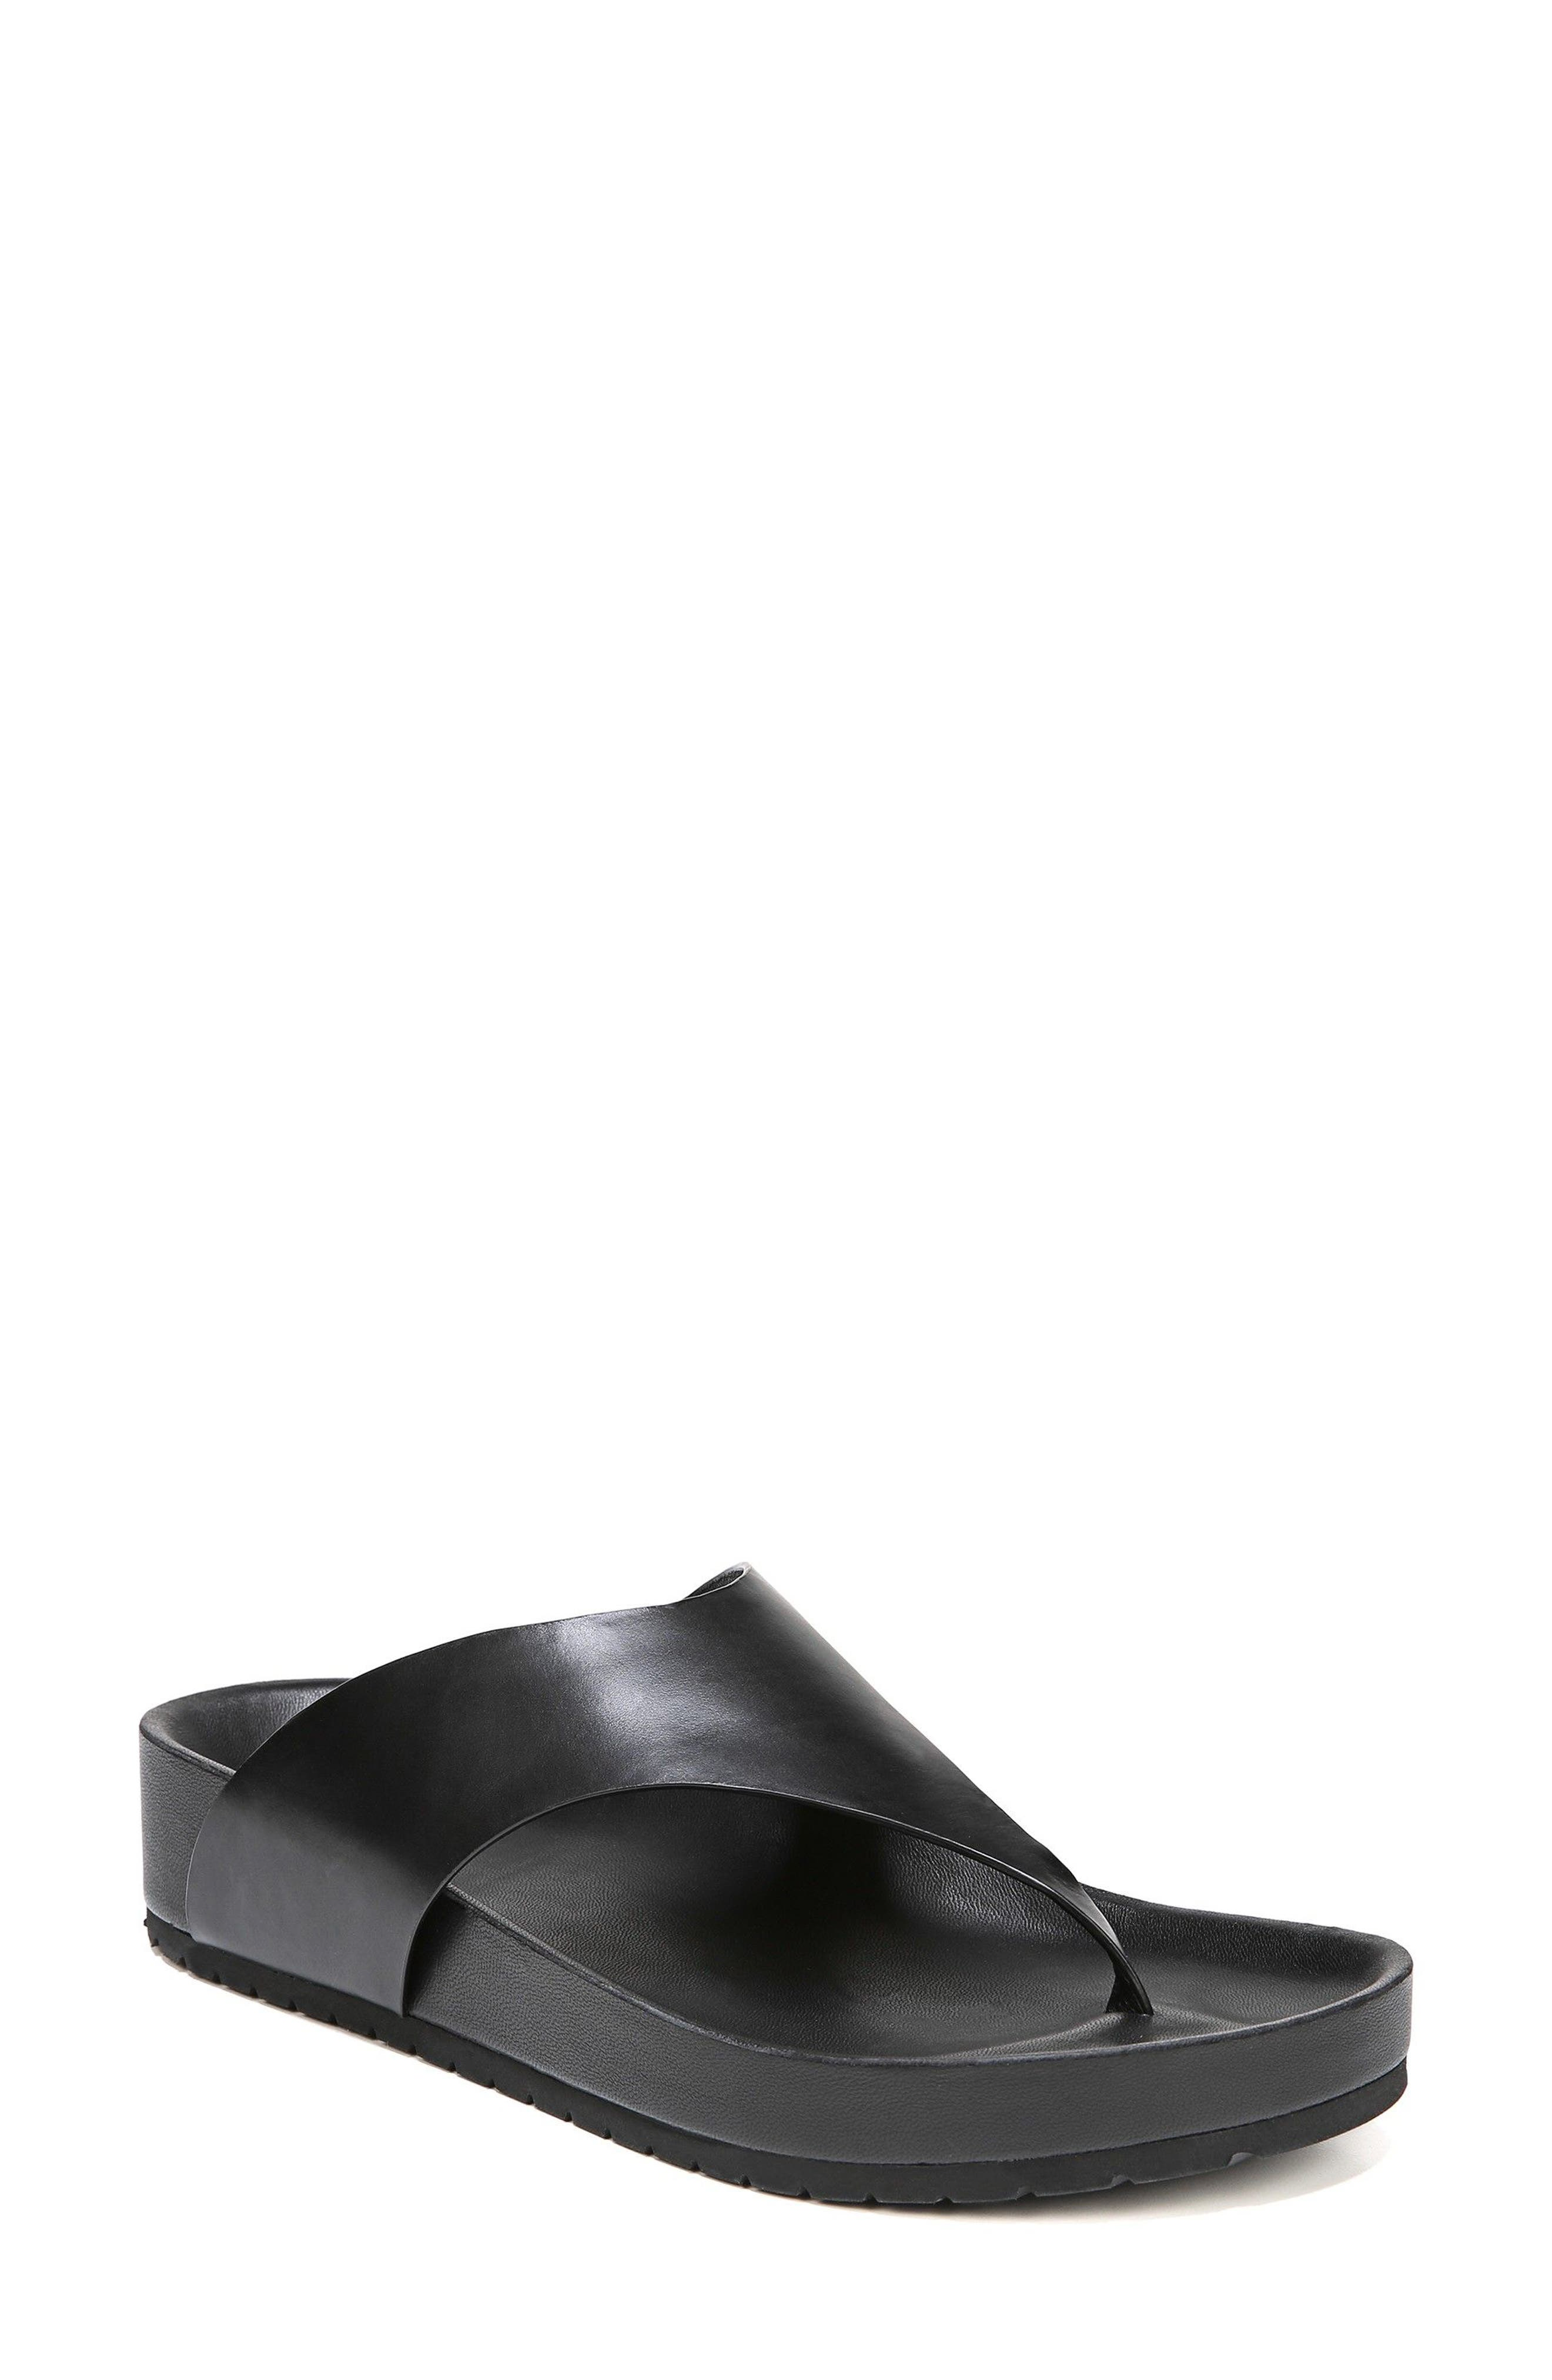 Padma Platform Sandal,                         Main,                         color, BLACK